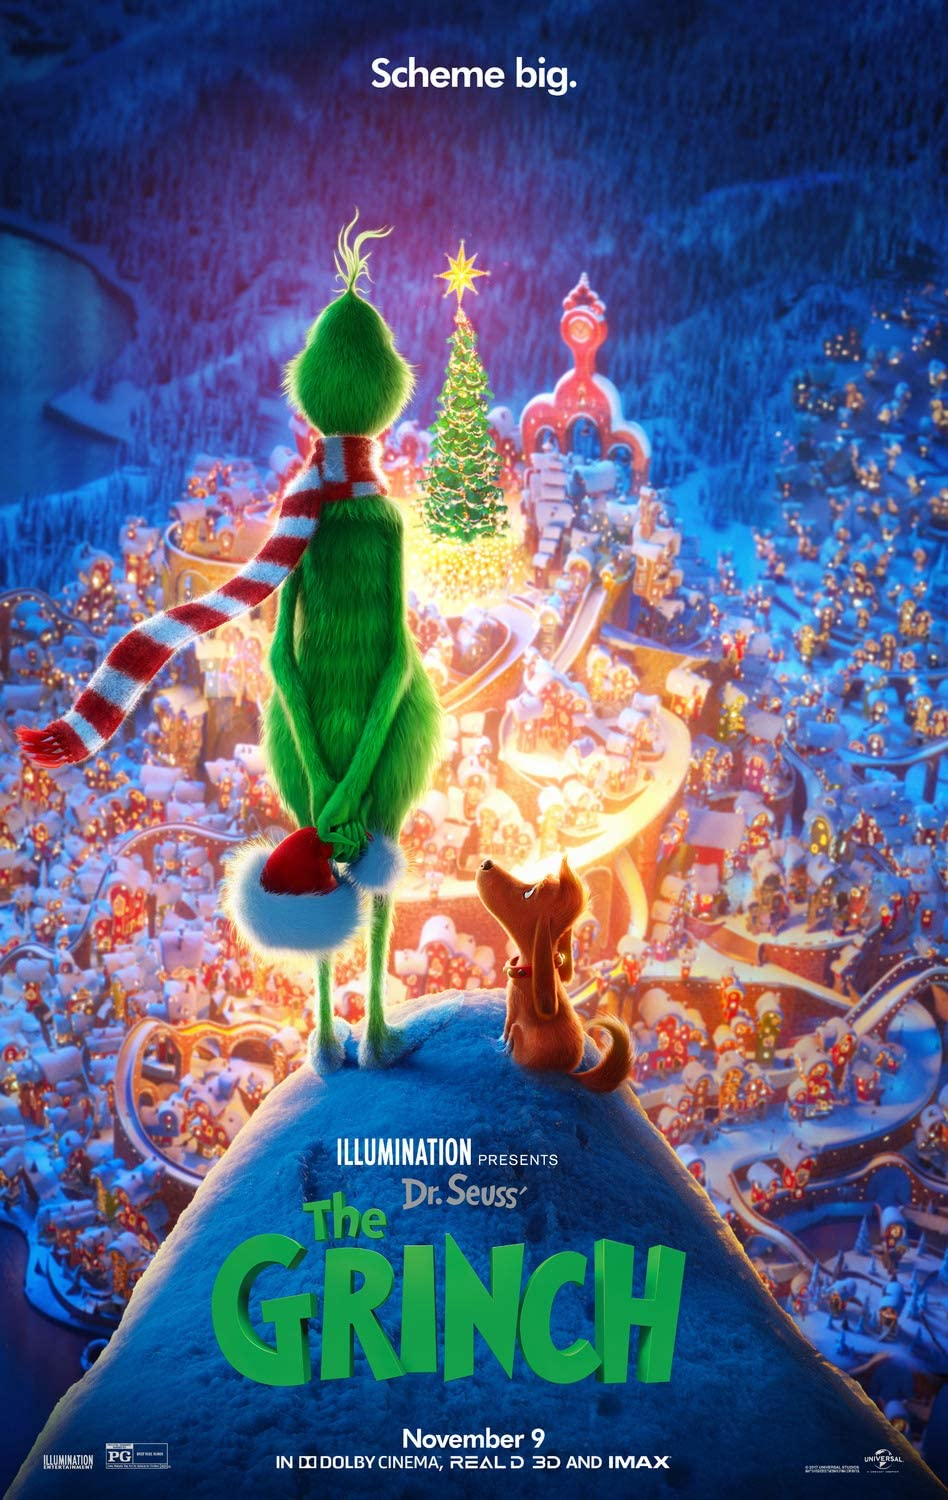 The Grinch 2018 Poster 11x17 Inch Promo Movie Poster